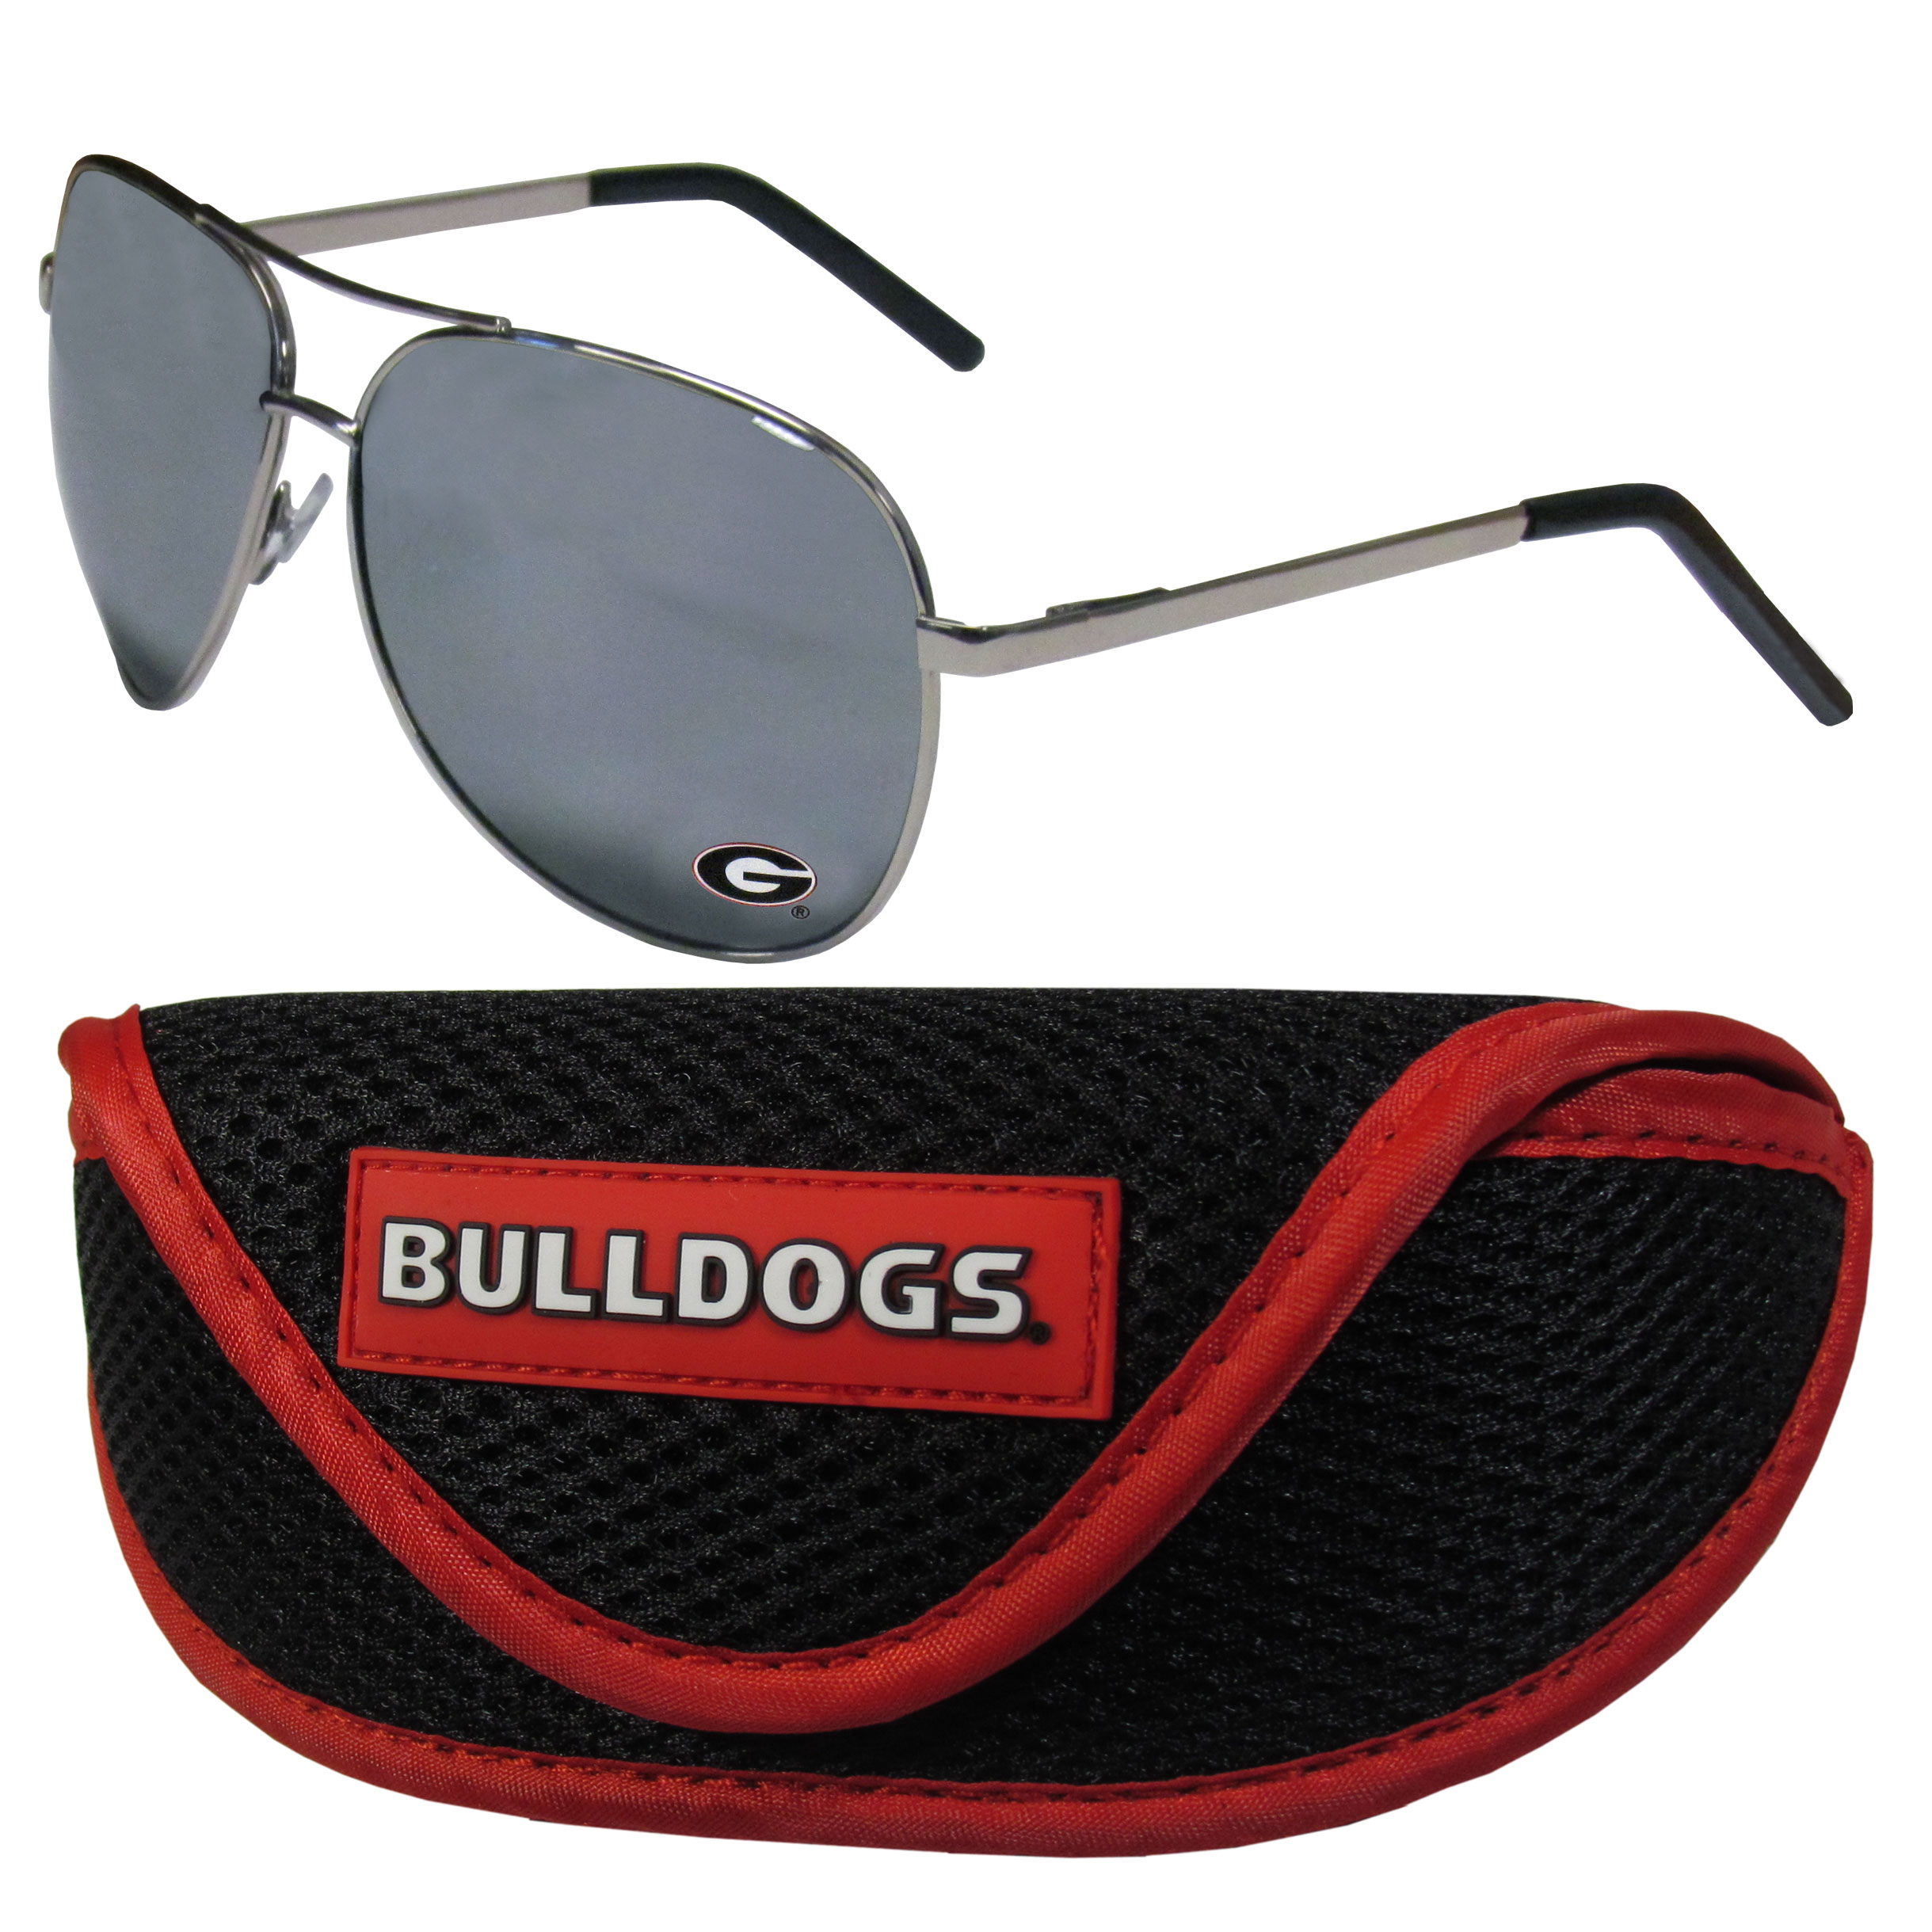 Georgia Bulldogs Aviator Sunglasses and Sports Case - Aviator sunglasses are truly an iconic retro fashion statement that never goes out-of-style. Our Georgia Bulldogs  aviator sunglasses pair this classic look with your love of the game. The iridium coated lenses reduce glare while driving, boating, golfing and their 100% UVA/UVB rating provides you with the maximum UV protection for all your outdoor activities. A millennial favorite, these affordable designer frames are the perfect eyewear accessory for a sports fan that is looking for high-quality at an affordable price. The durable, flex hinged frames are tough enough for hiking and camping or if you prefer sun bathing by the pool or on the beach these shades will really stand the test of time. The sunglasses come with a sporty case which has a large team logo on the lid that will make even the most die-hard fan proud!